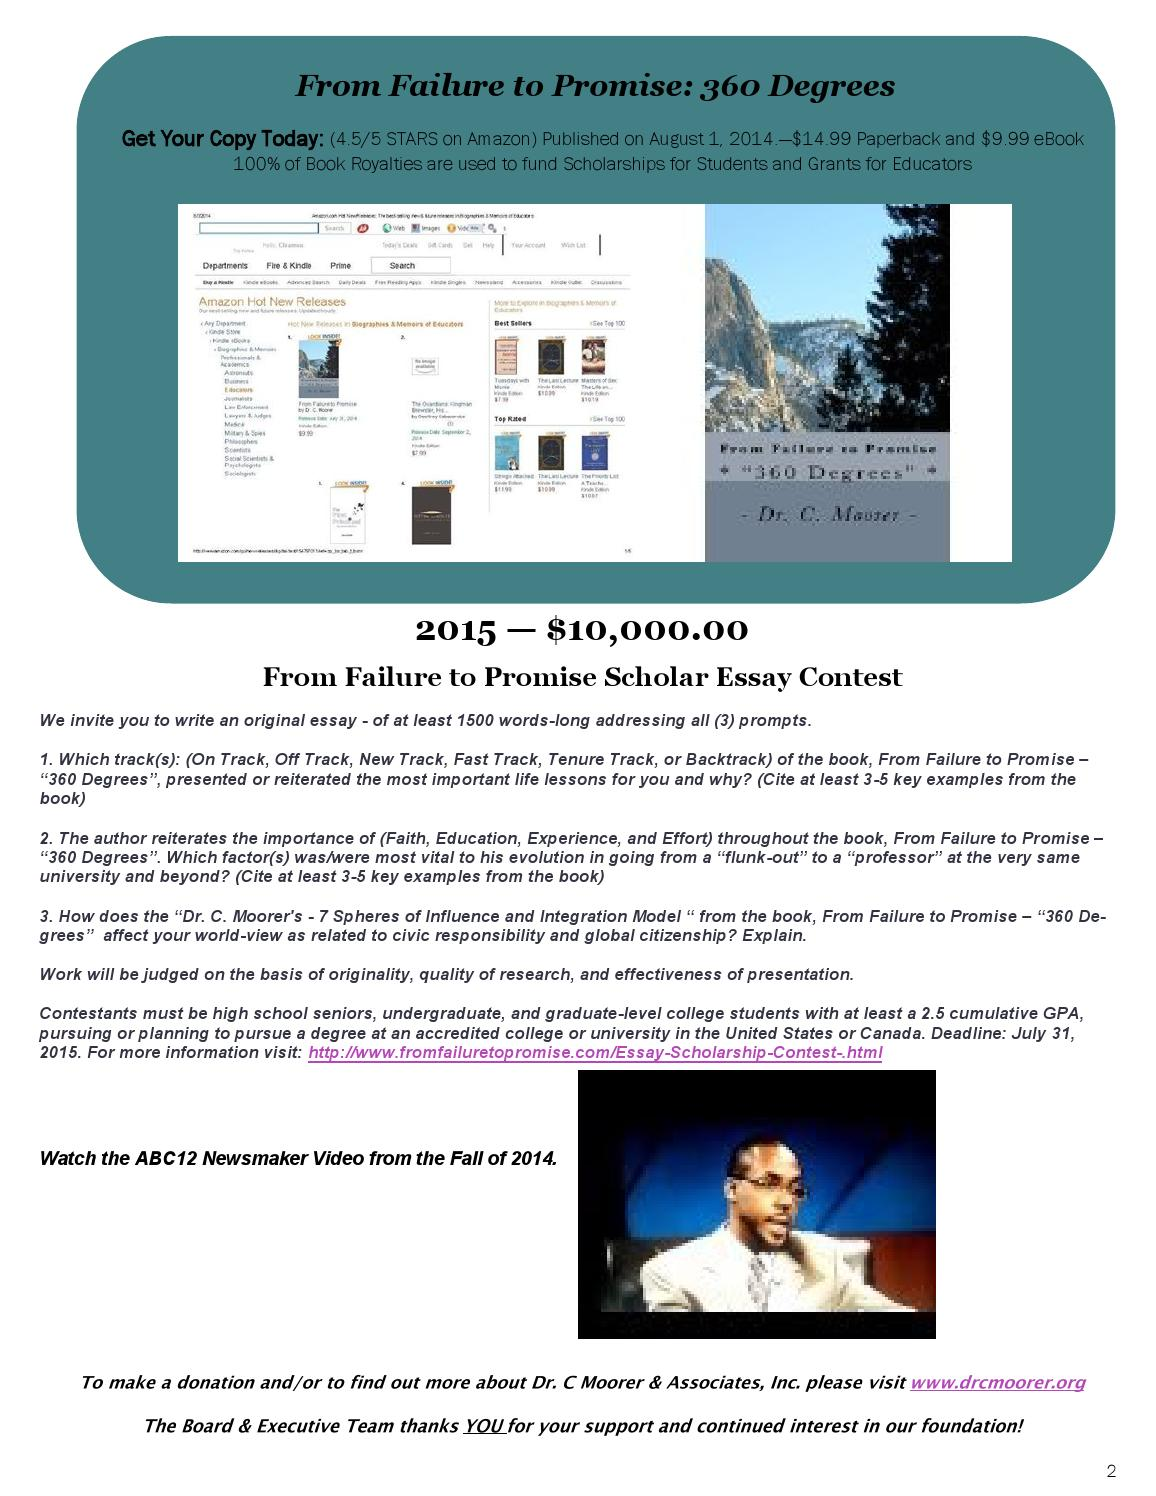 004 From Failure To Promise Essay Contest Page 2 Unique Full